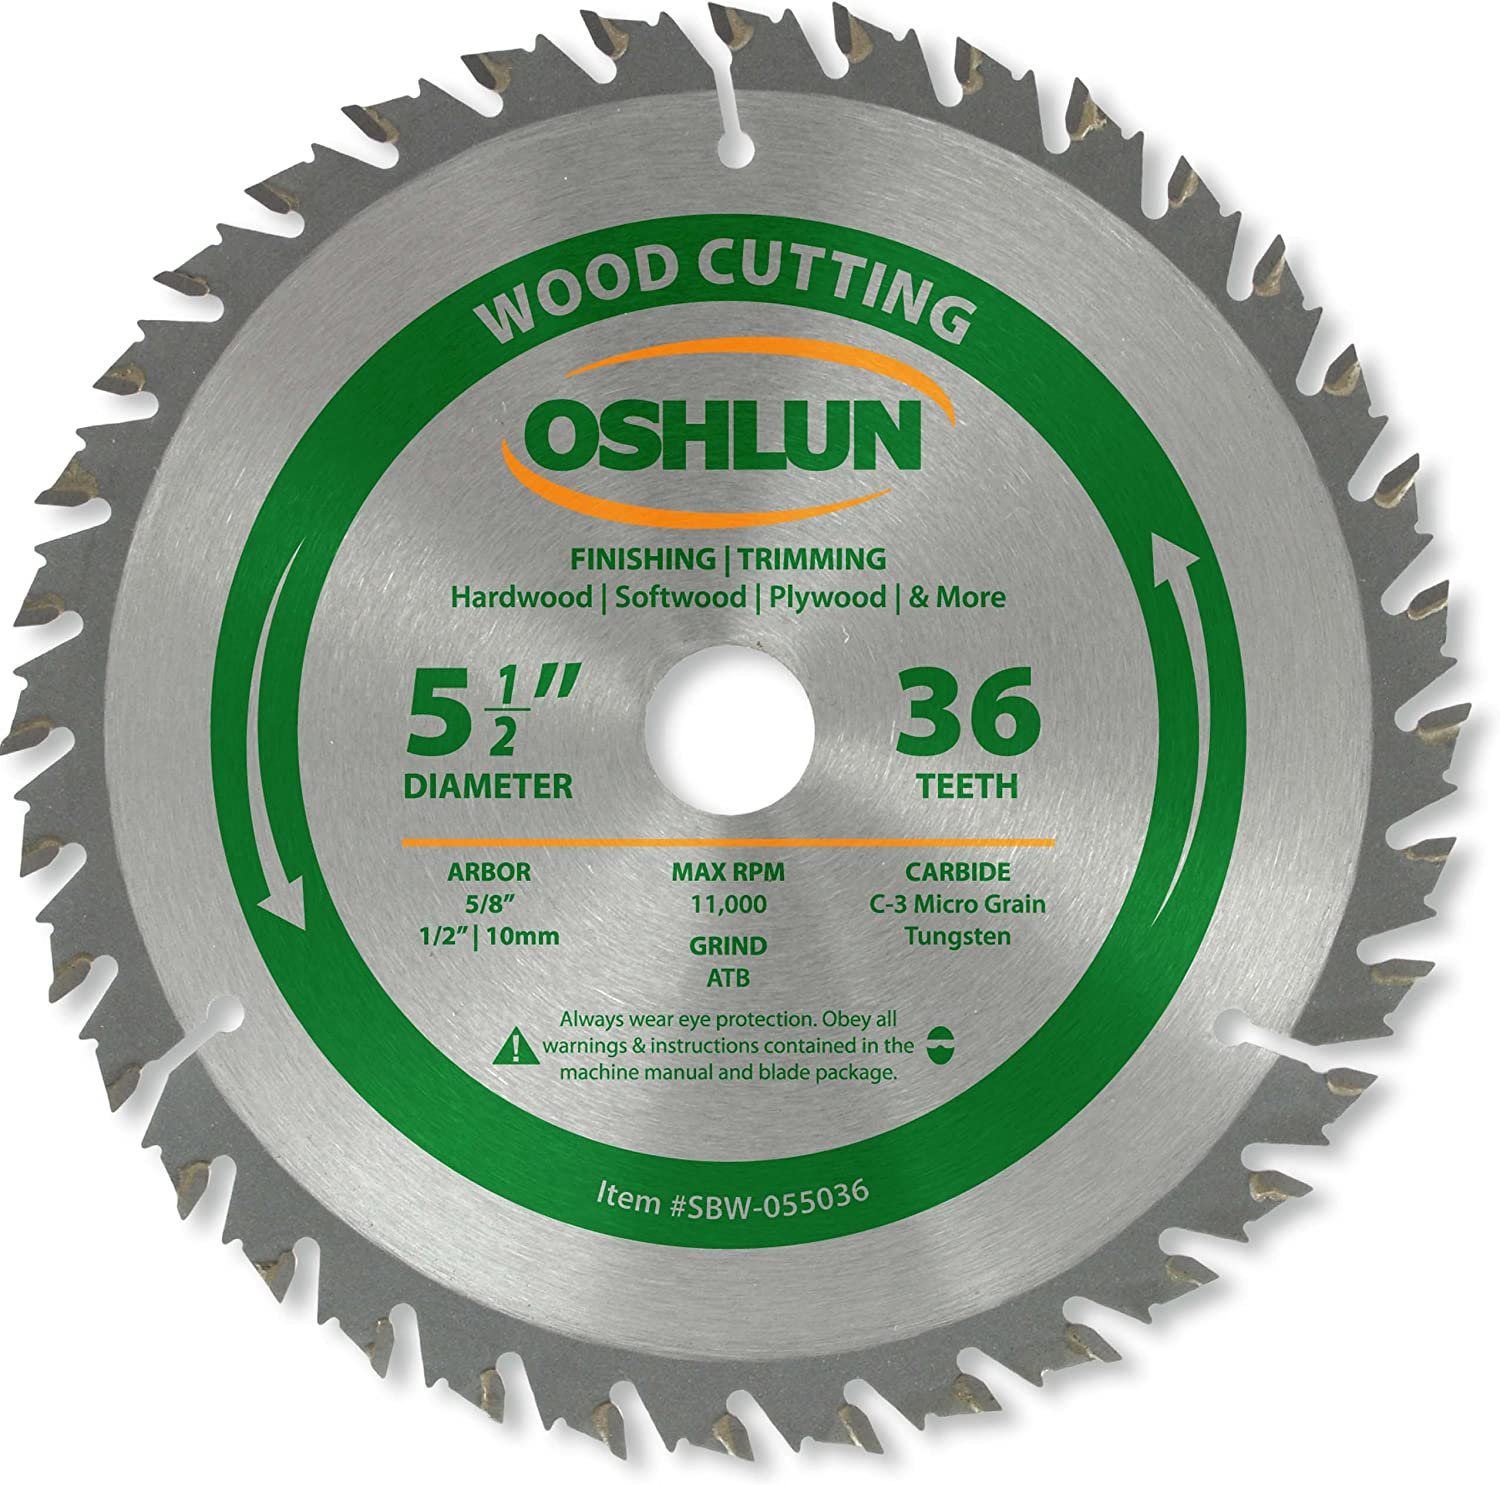 Oshlun ATB Finishing and Trimming Saw Blade